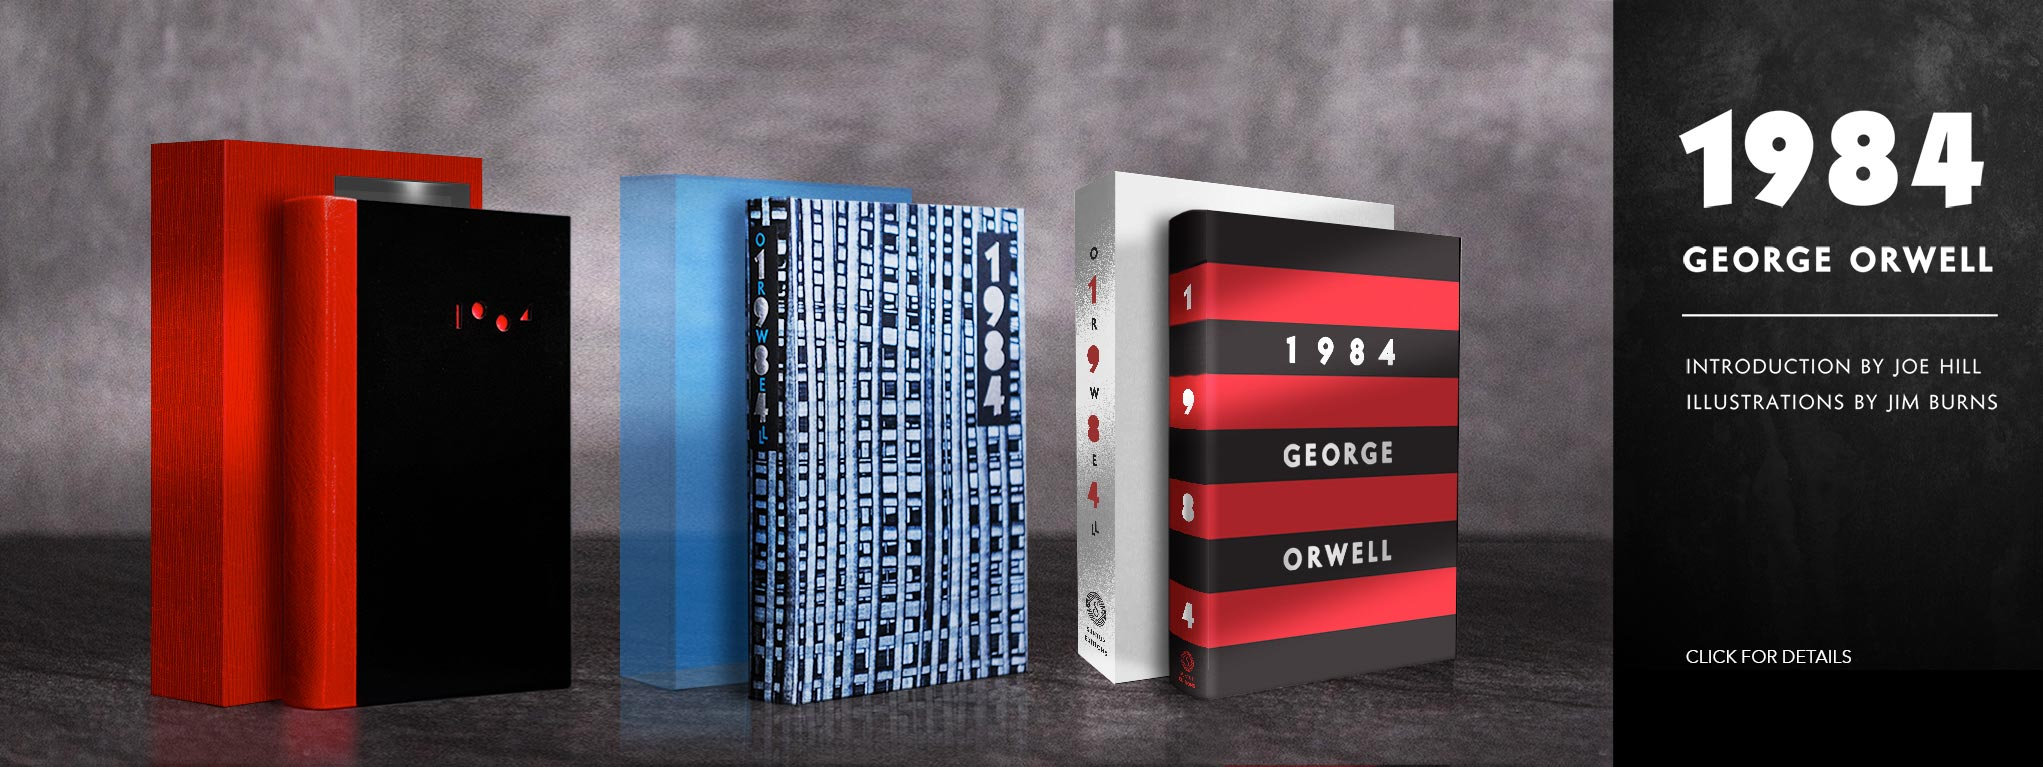 1984 - George Orwell - Suntup Editions